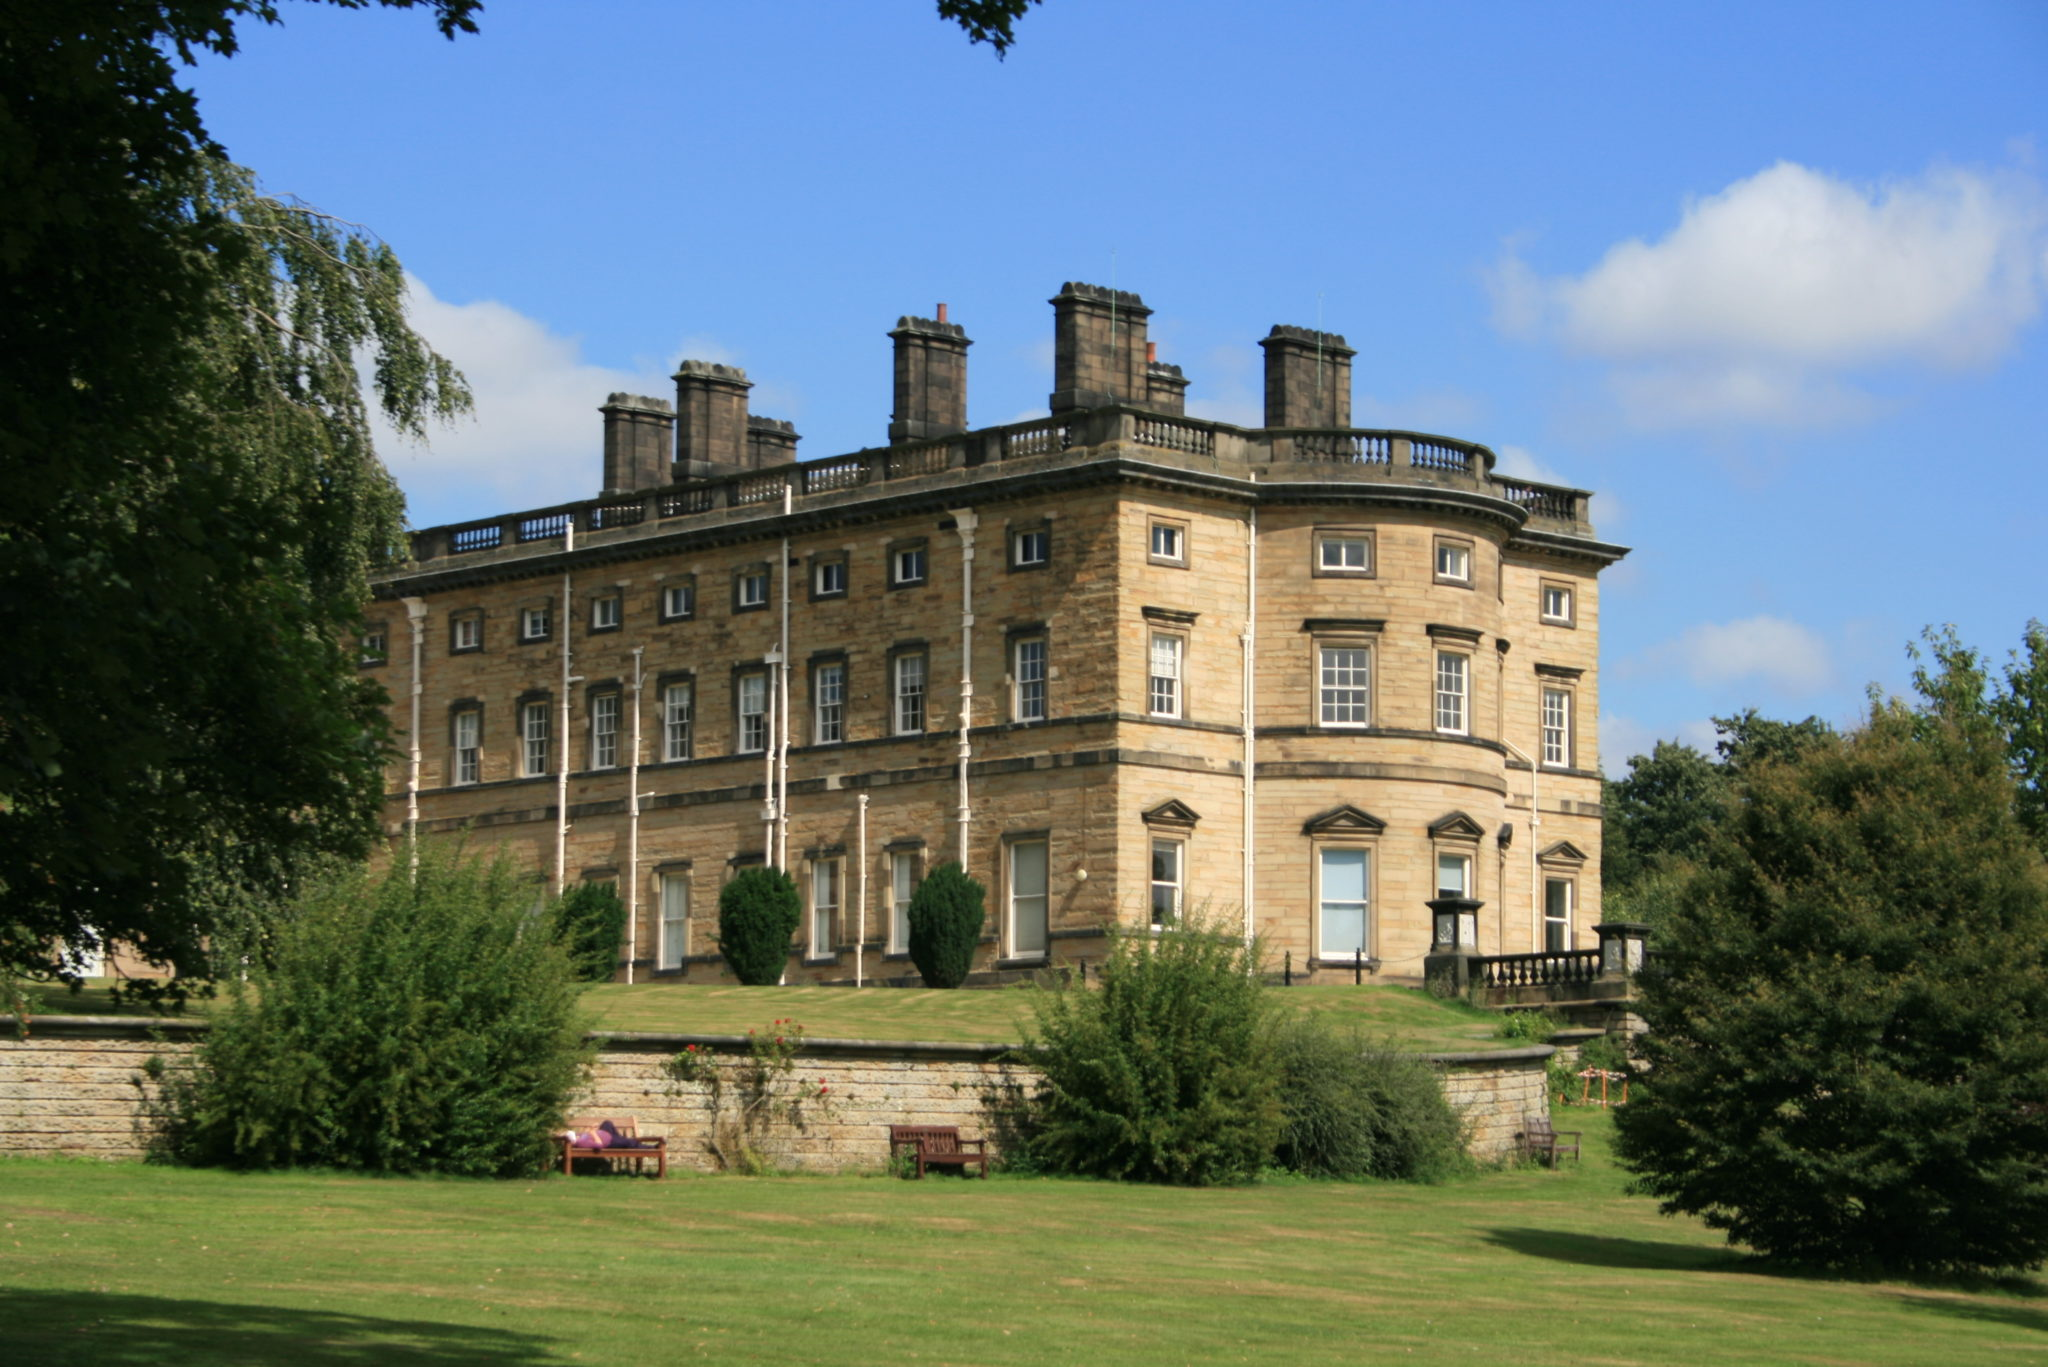 Artfarm appointed as Operator-Partner for the transformation of Bretton Hall